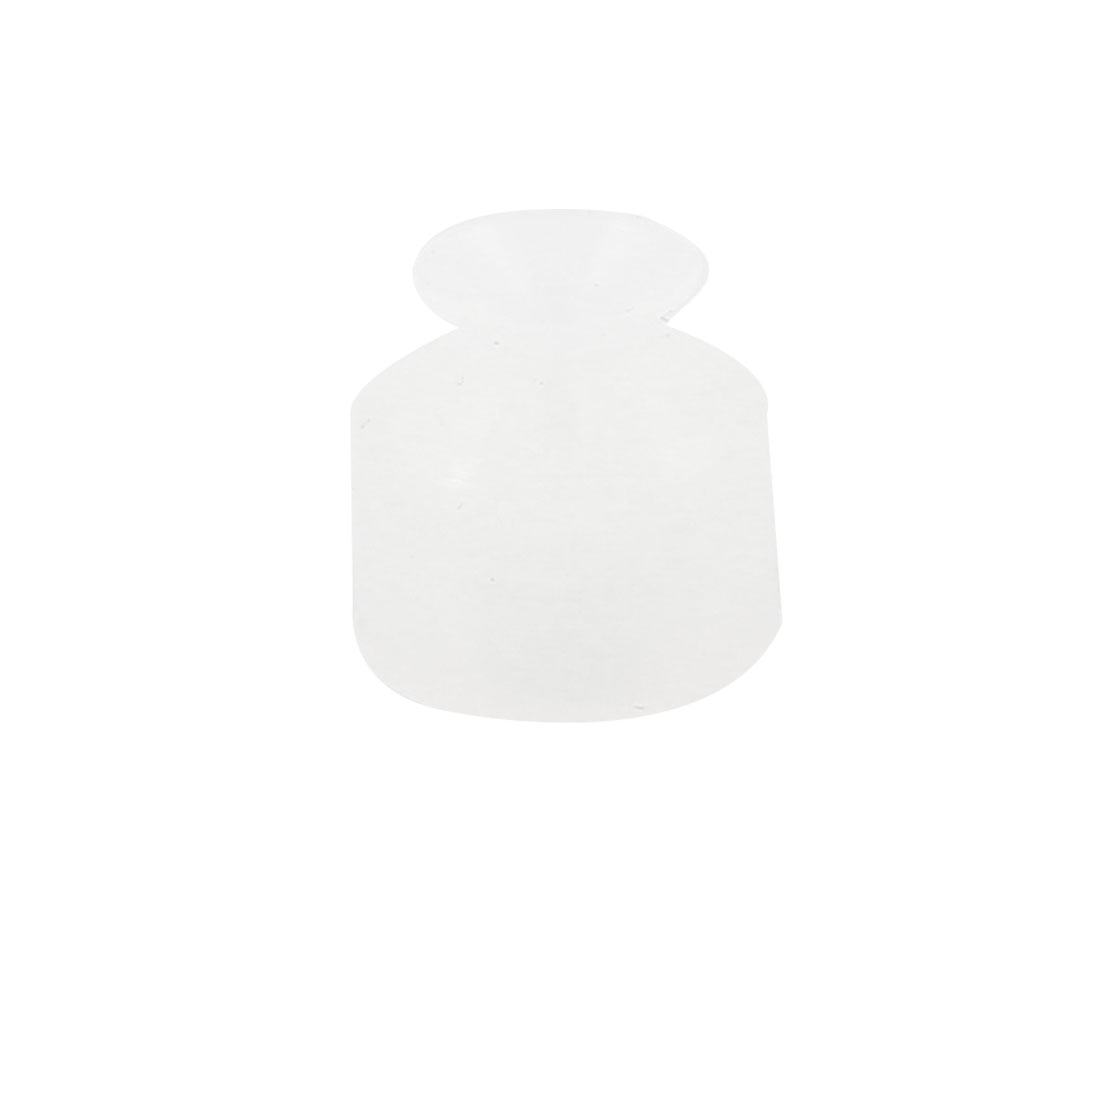 6mm Outside Dia Silicone Oil Resistance Vacuum Suction Cup Sucker Clear White